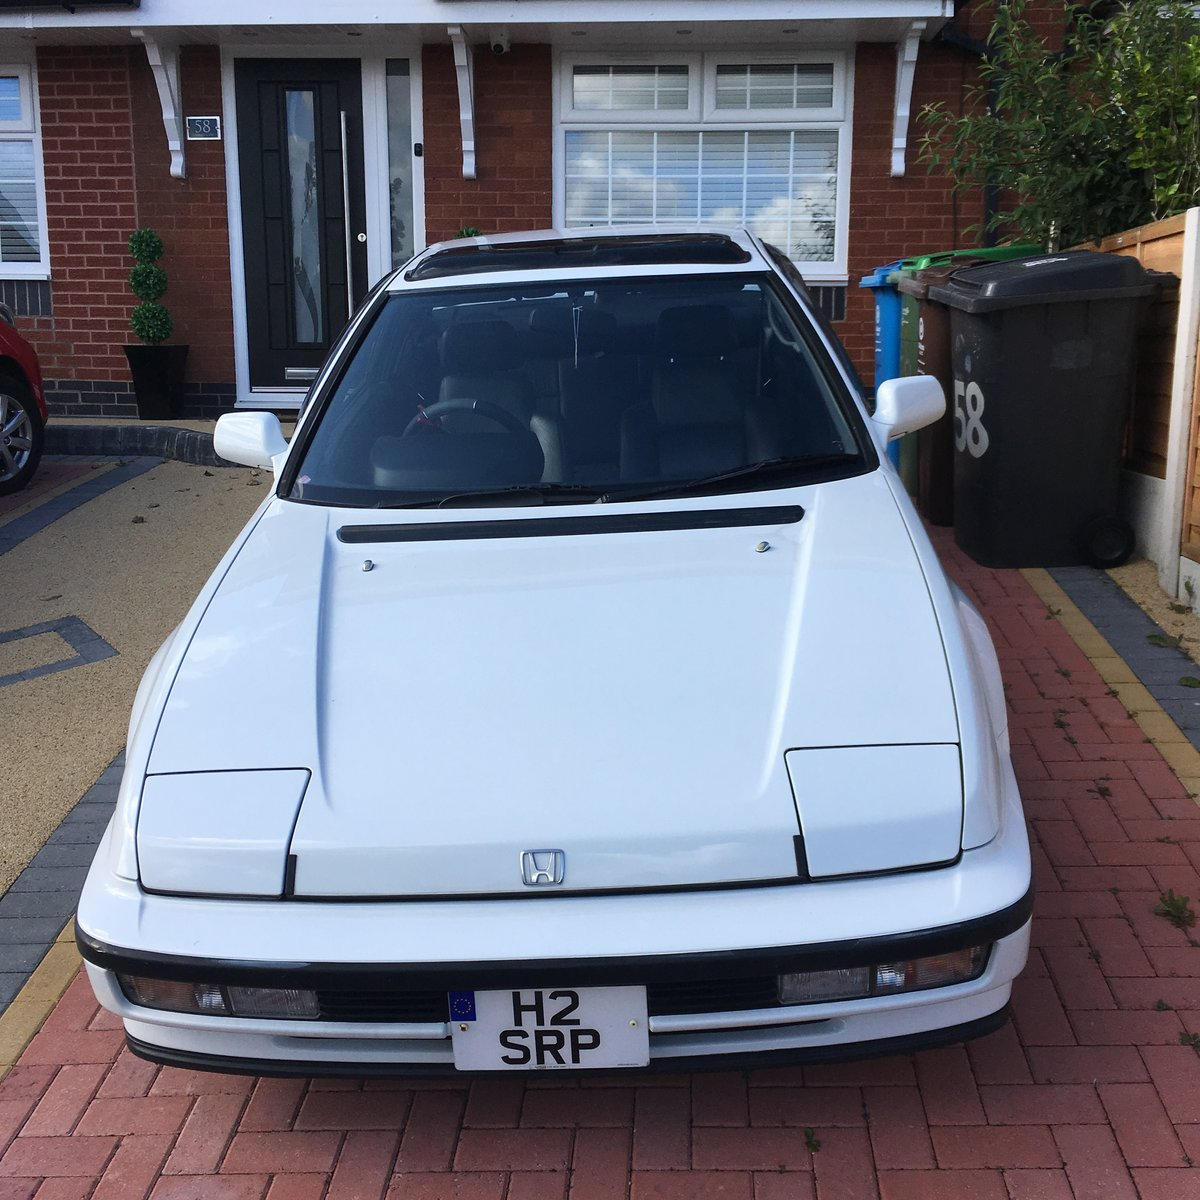 1990 Honda prelude Auto, 4WS, 150bhp (B20A7) For Sale (picture 2 of 6)